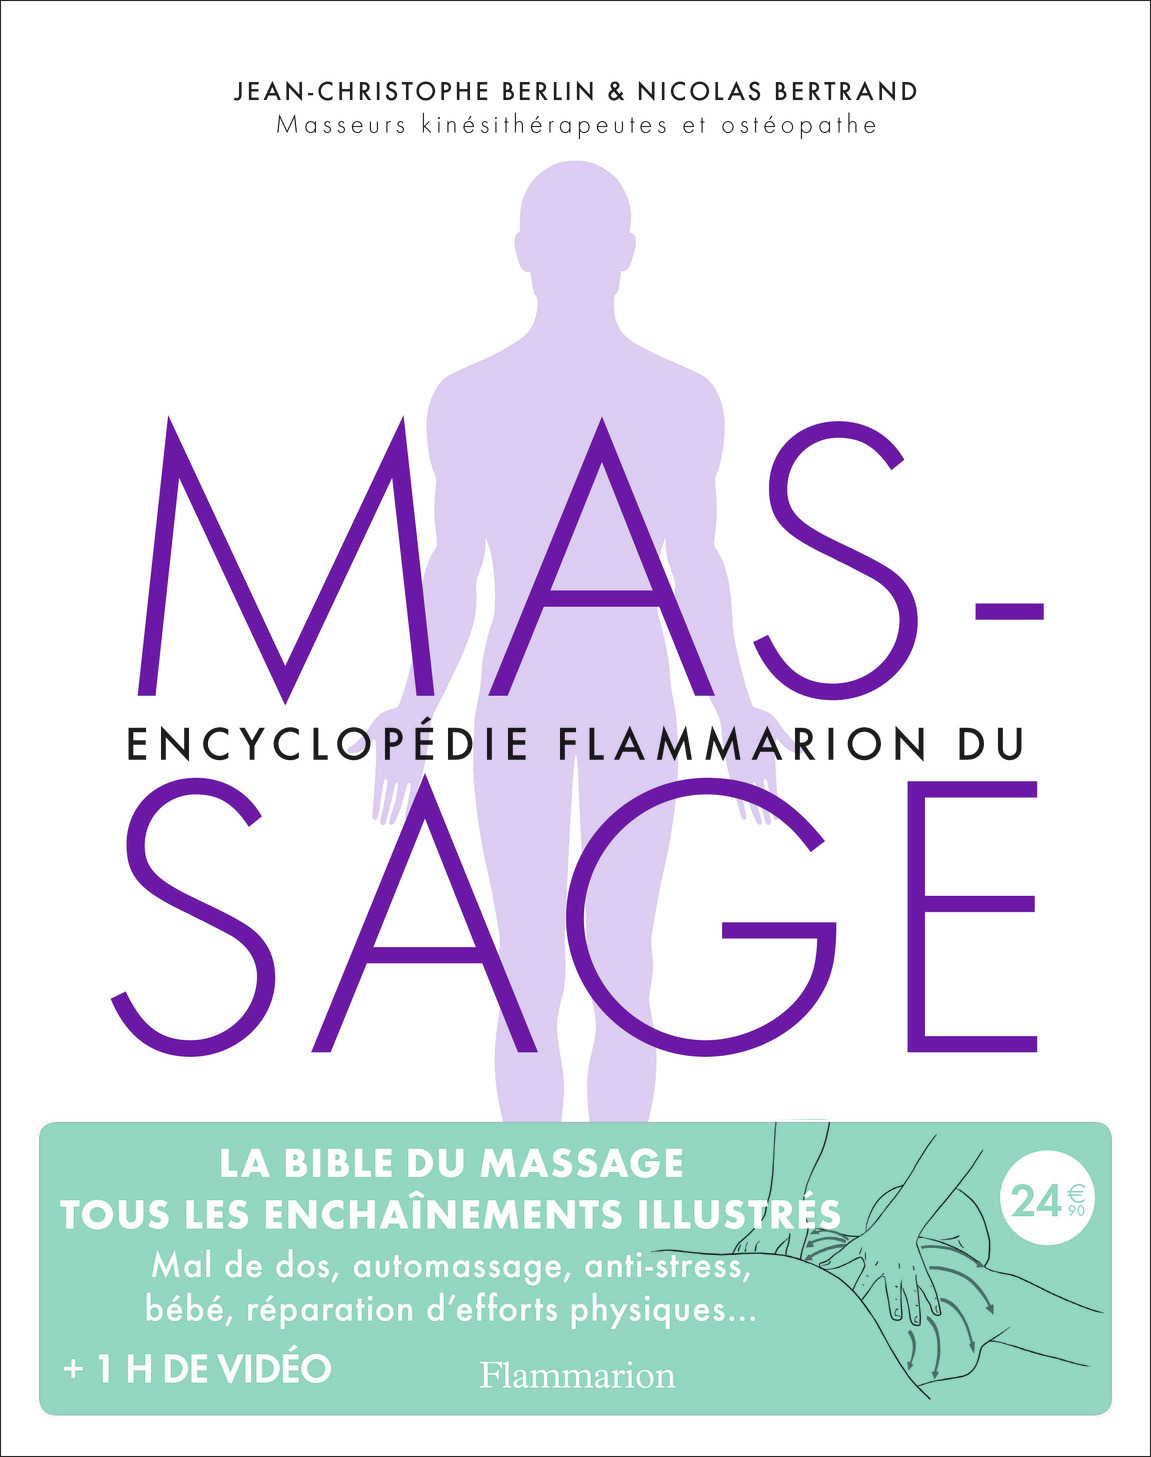 ENCYCLOPEDIE DU MASSAGE